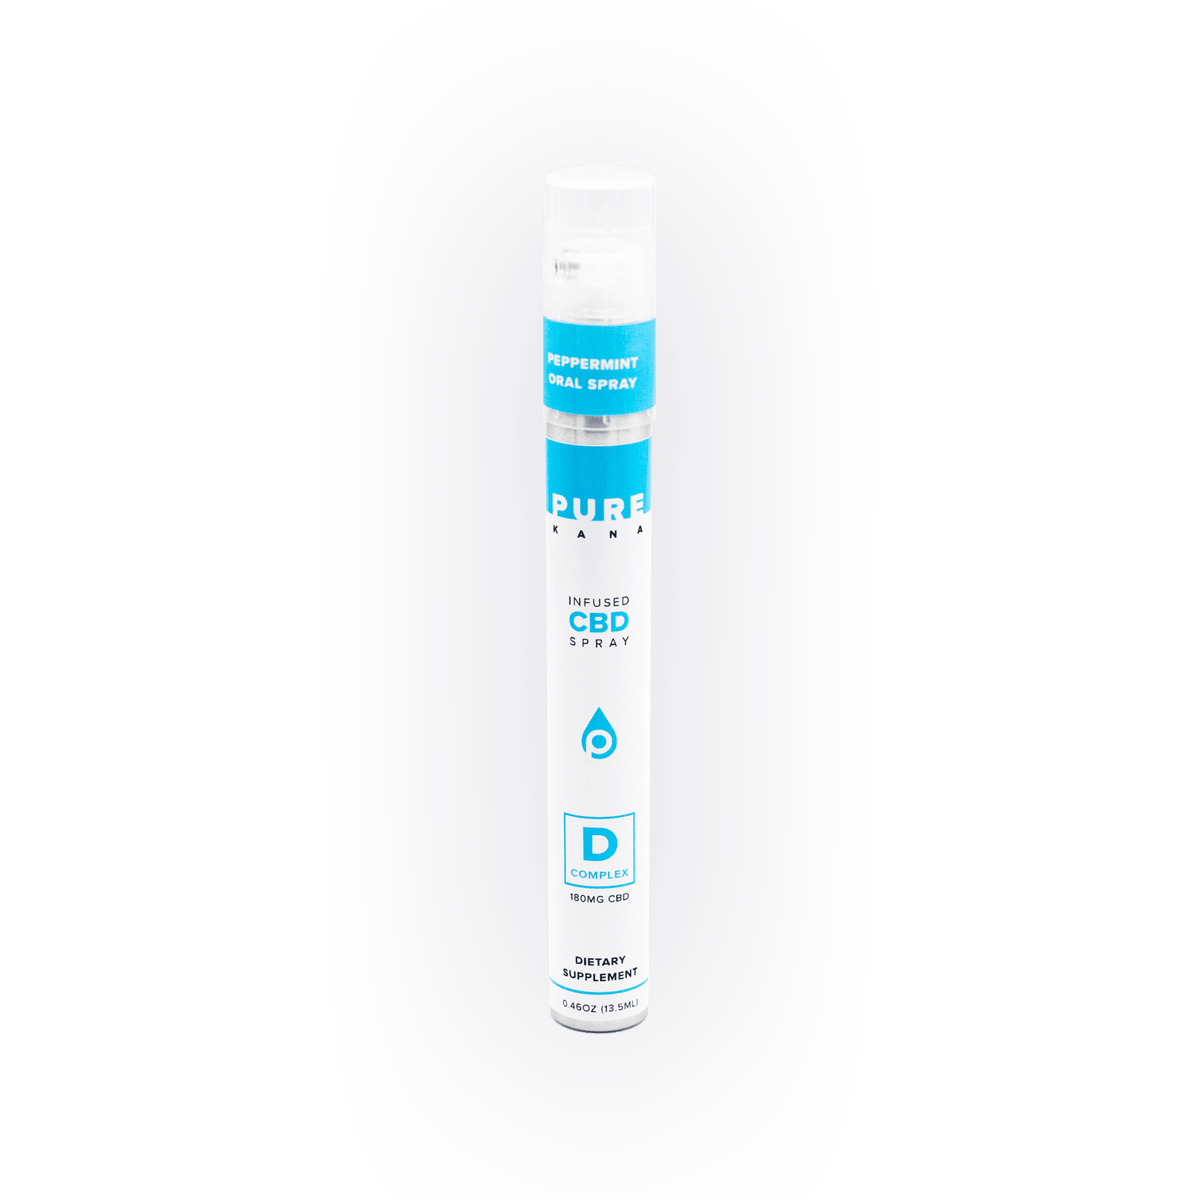 CBD spray Purekana